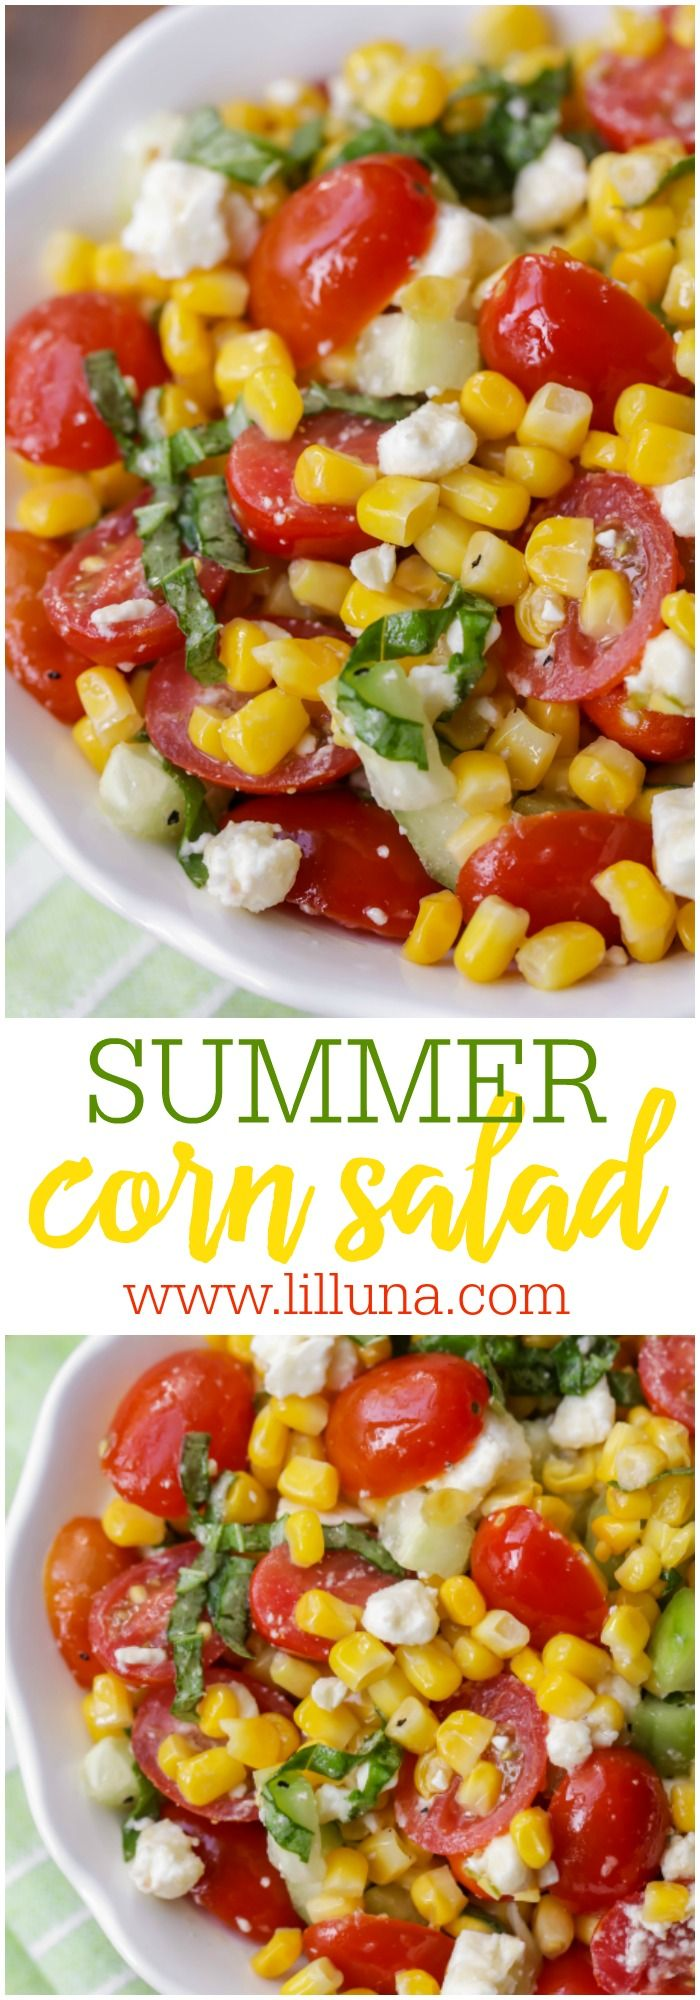 Summer Corn Salad – a light, flavorful salad filled with corn, tomatoes, feta, b…